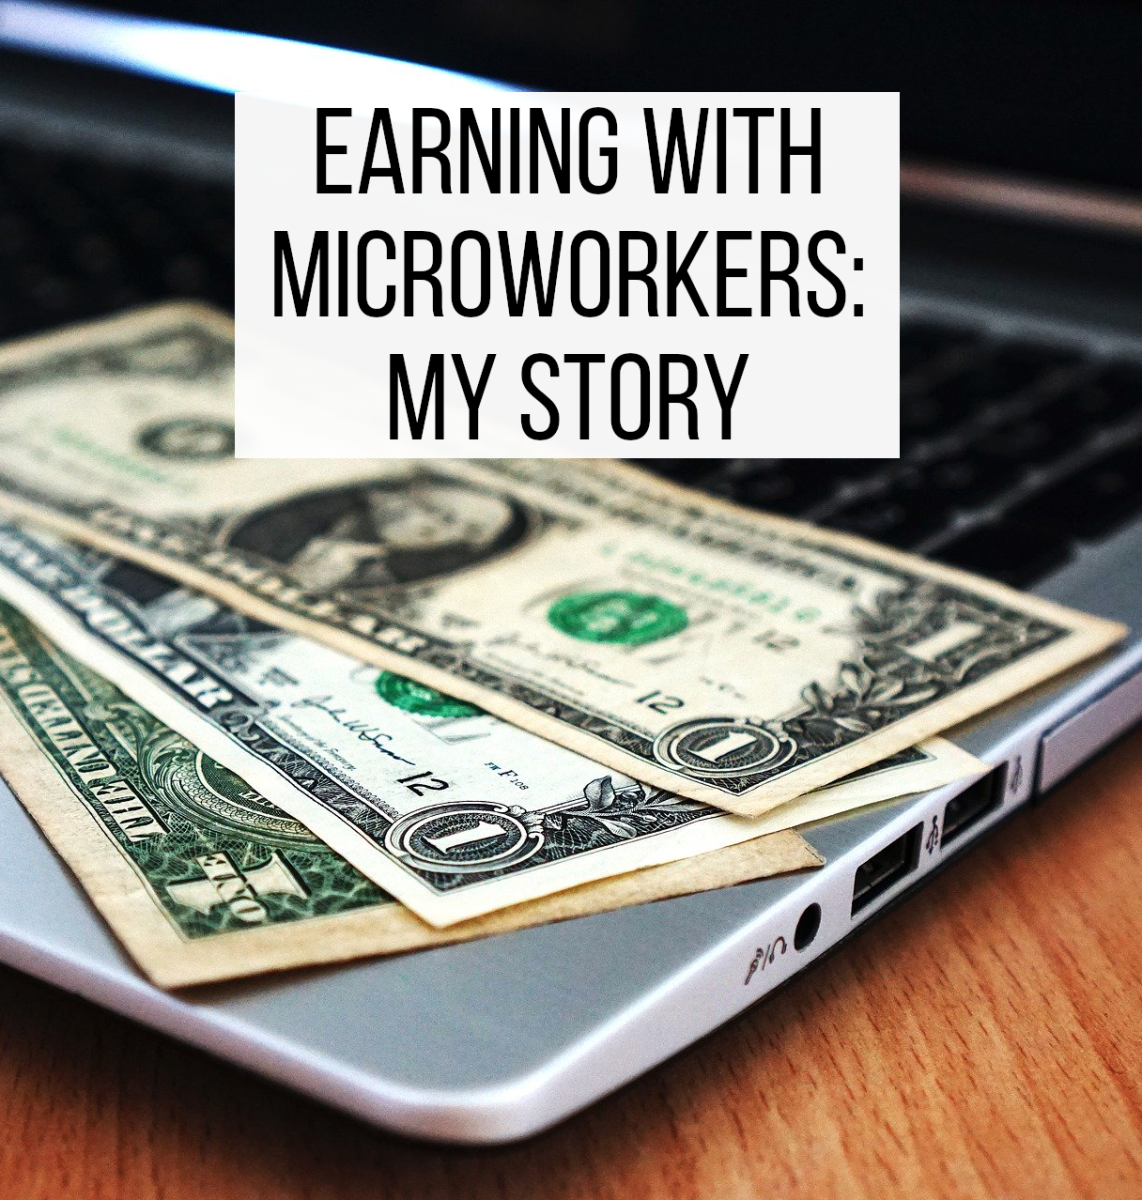 My experience of earning online with Microworkers.